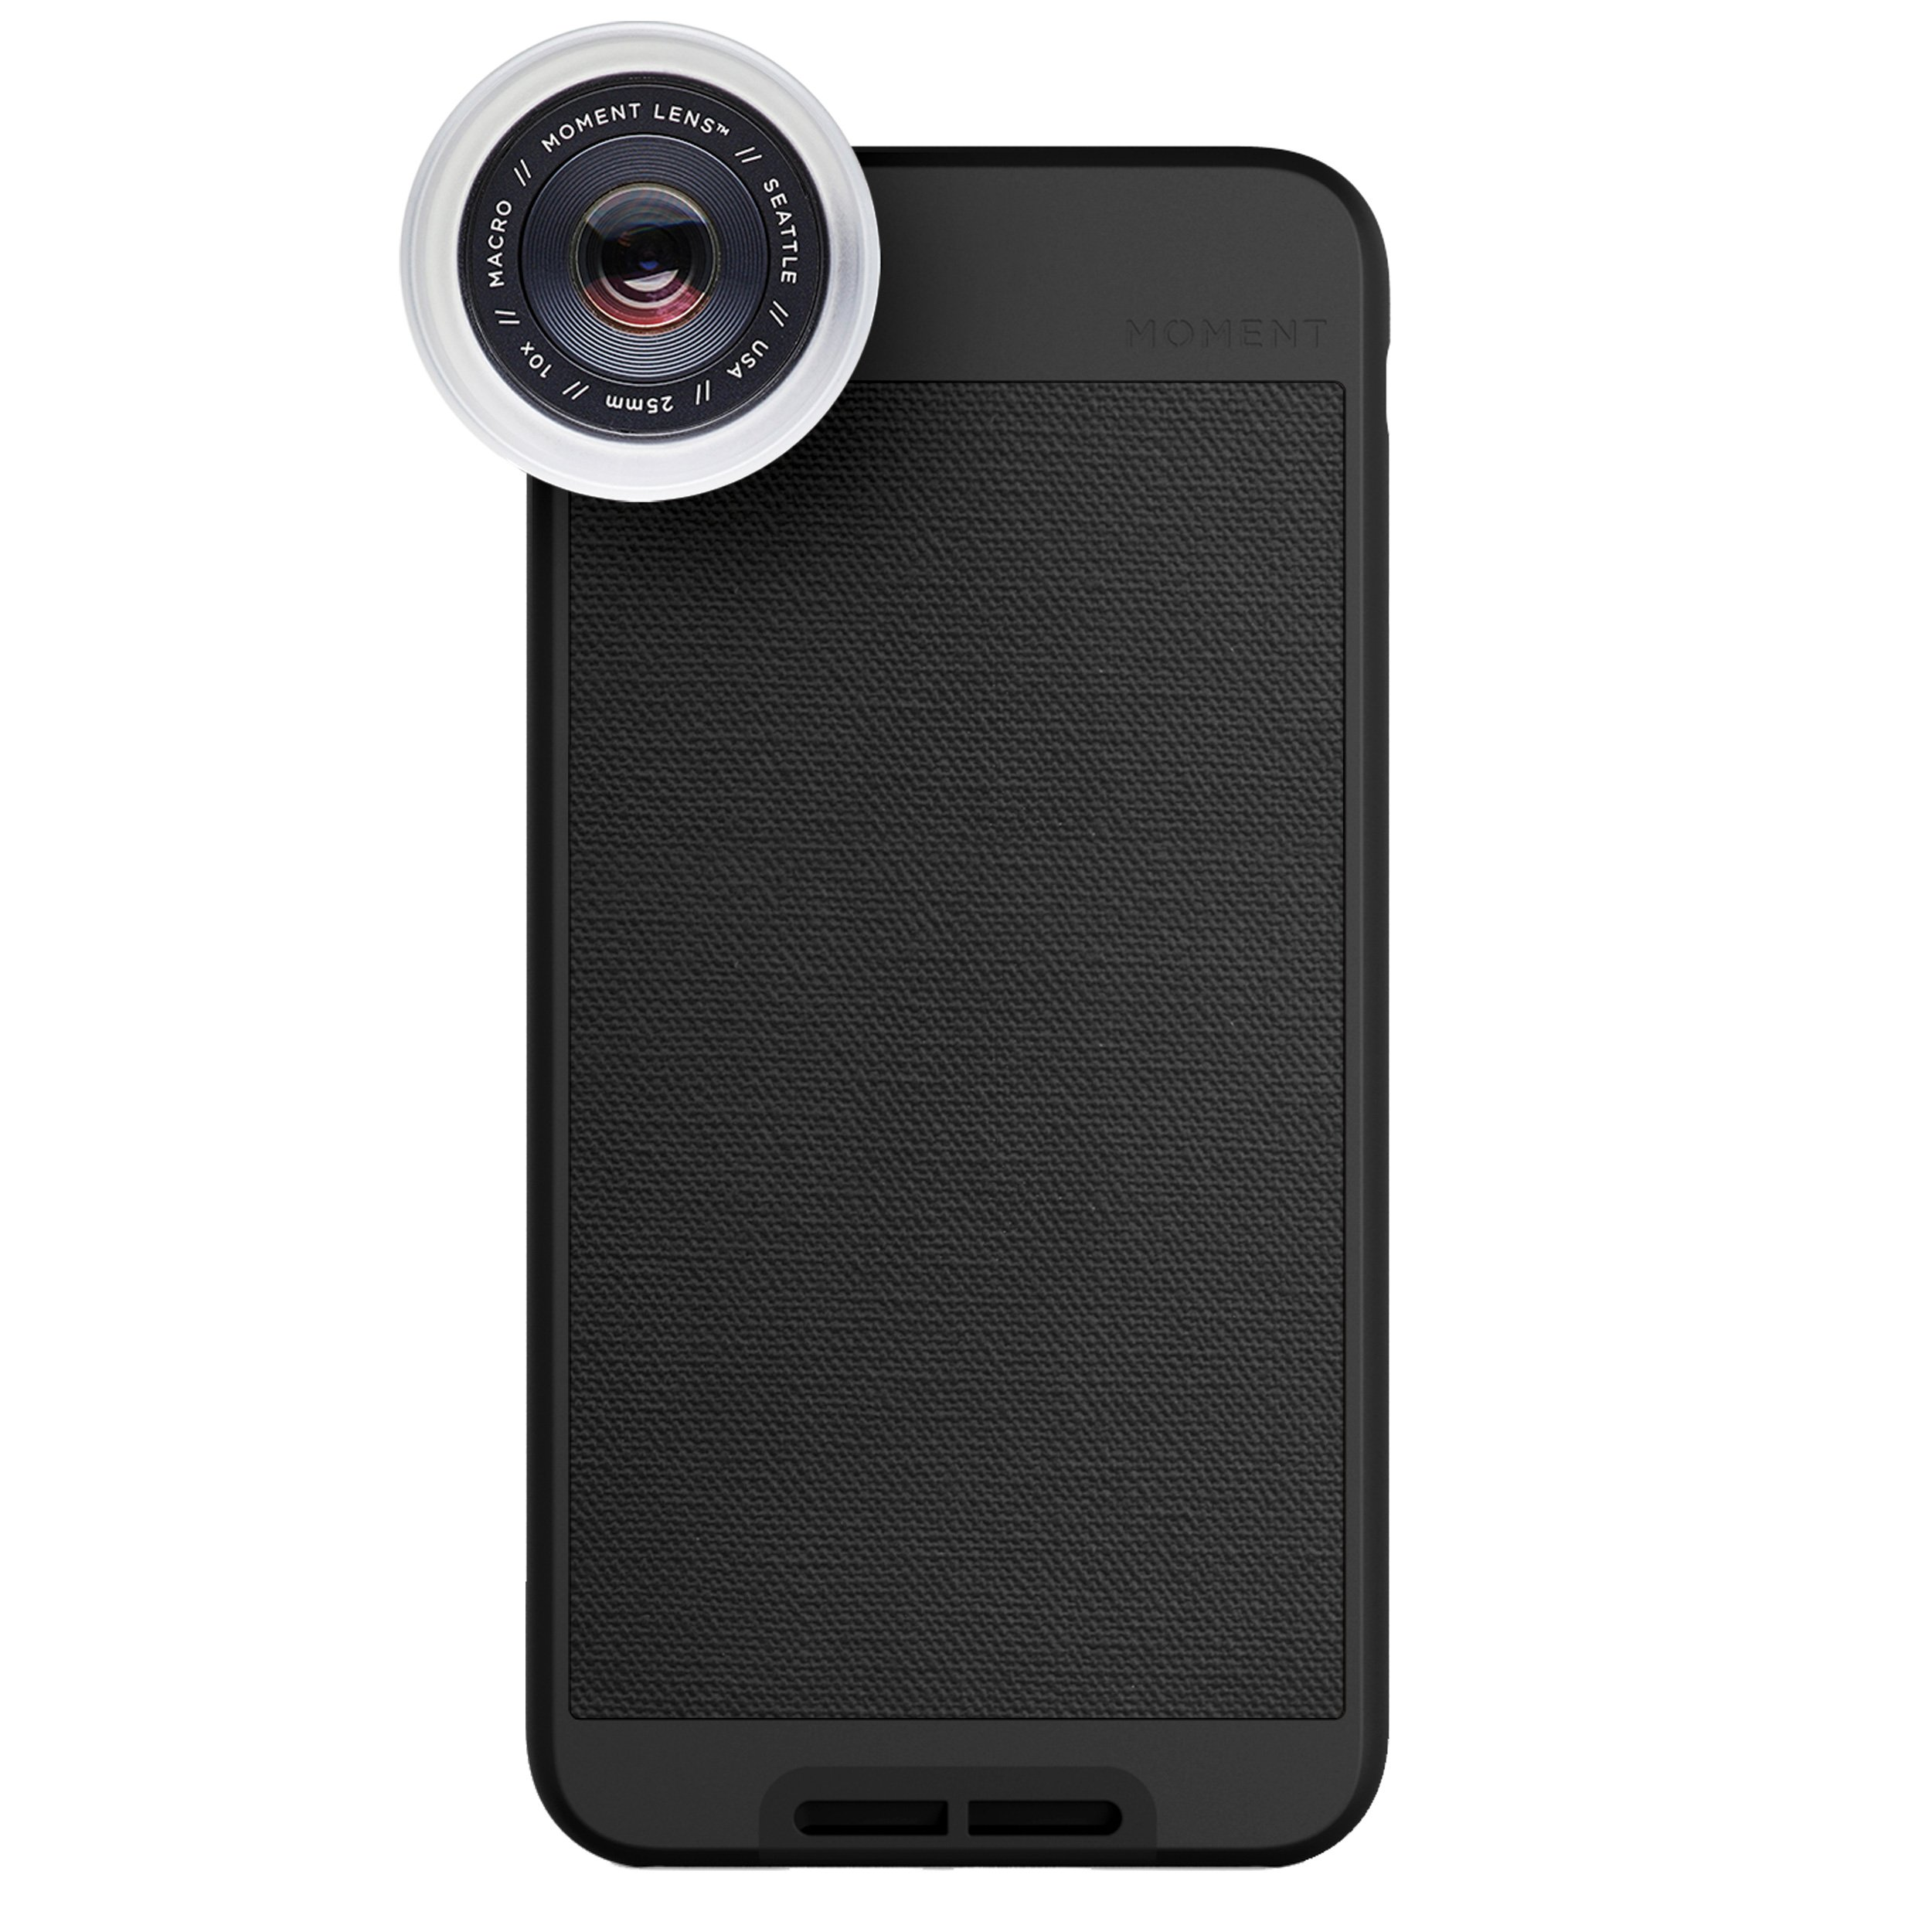 iPhone 6 Plus Case with Macro Lens Kit    Moment Black Canvas Photo Case plus Macro Lens    Best iphone macro attachment lens with thin protective case.